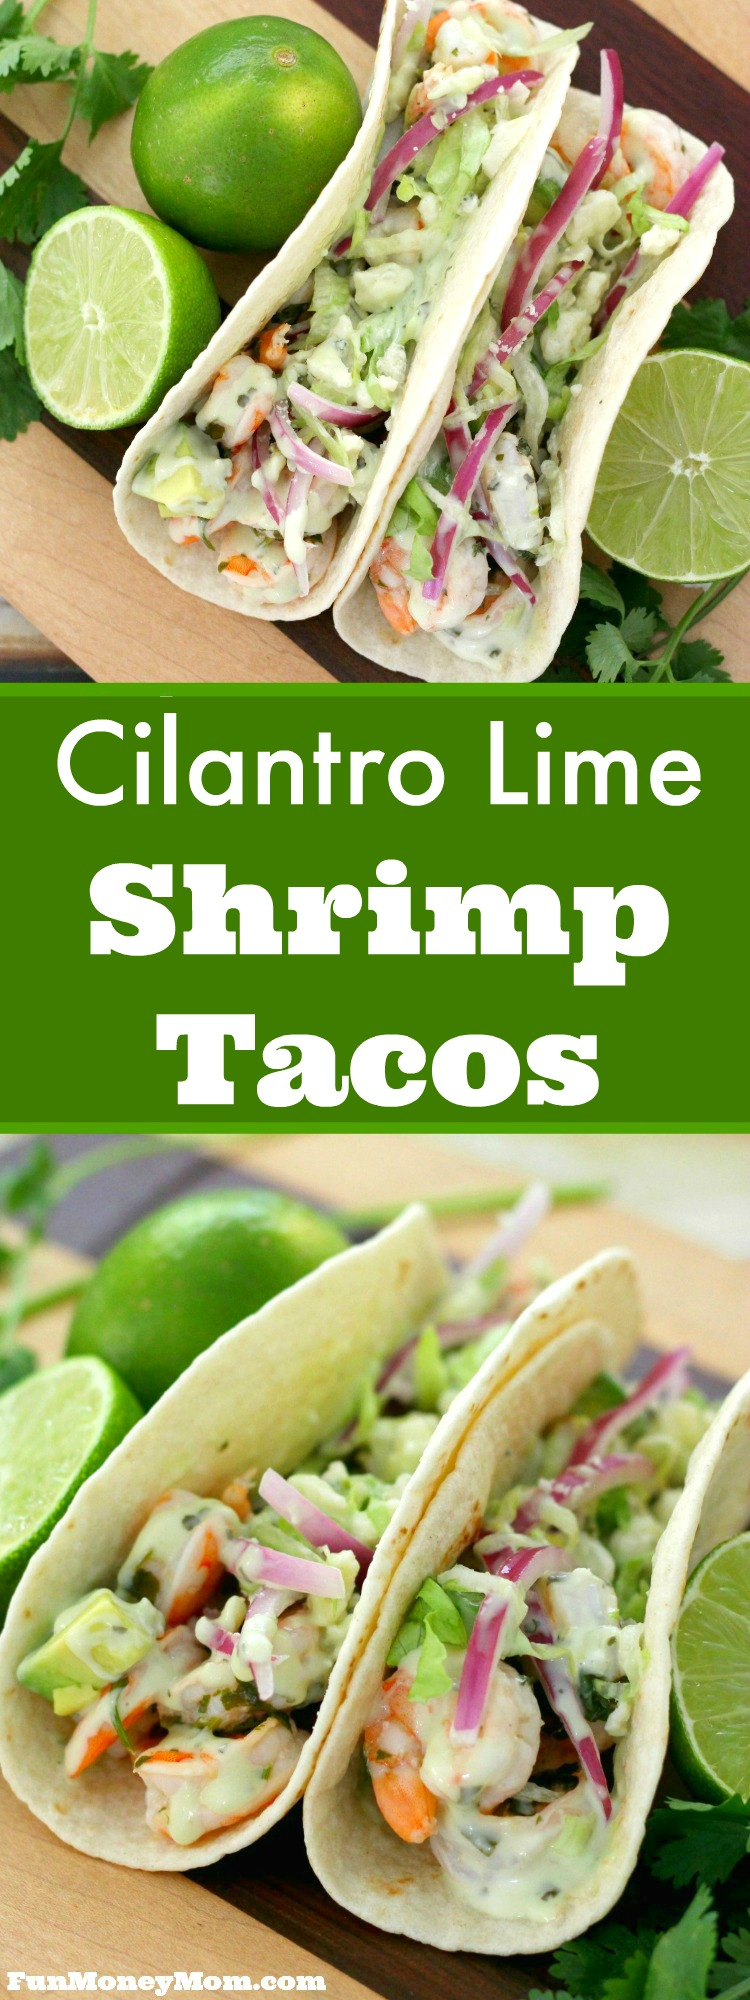 Looking for an easy dinner recipe that your family will love? Don't wait for Taco Tuesday to serve these Cilantro Lime Shrimp Tacos...they can be your main course any night of the week!